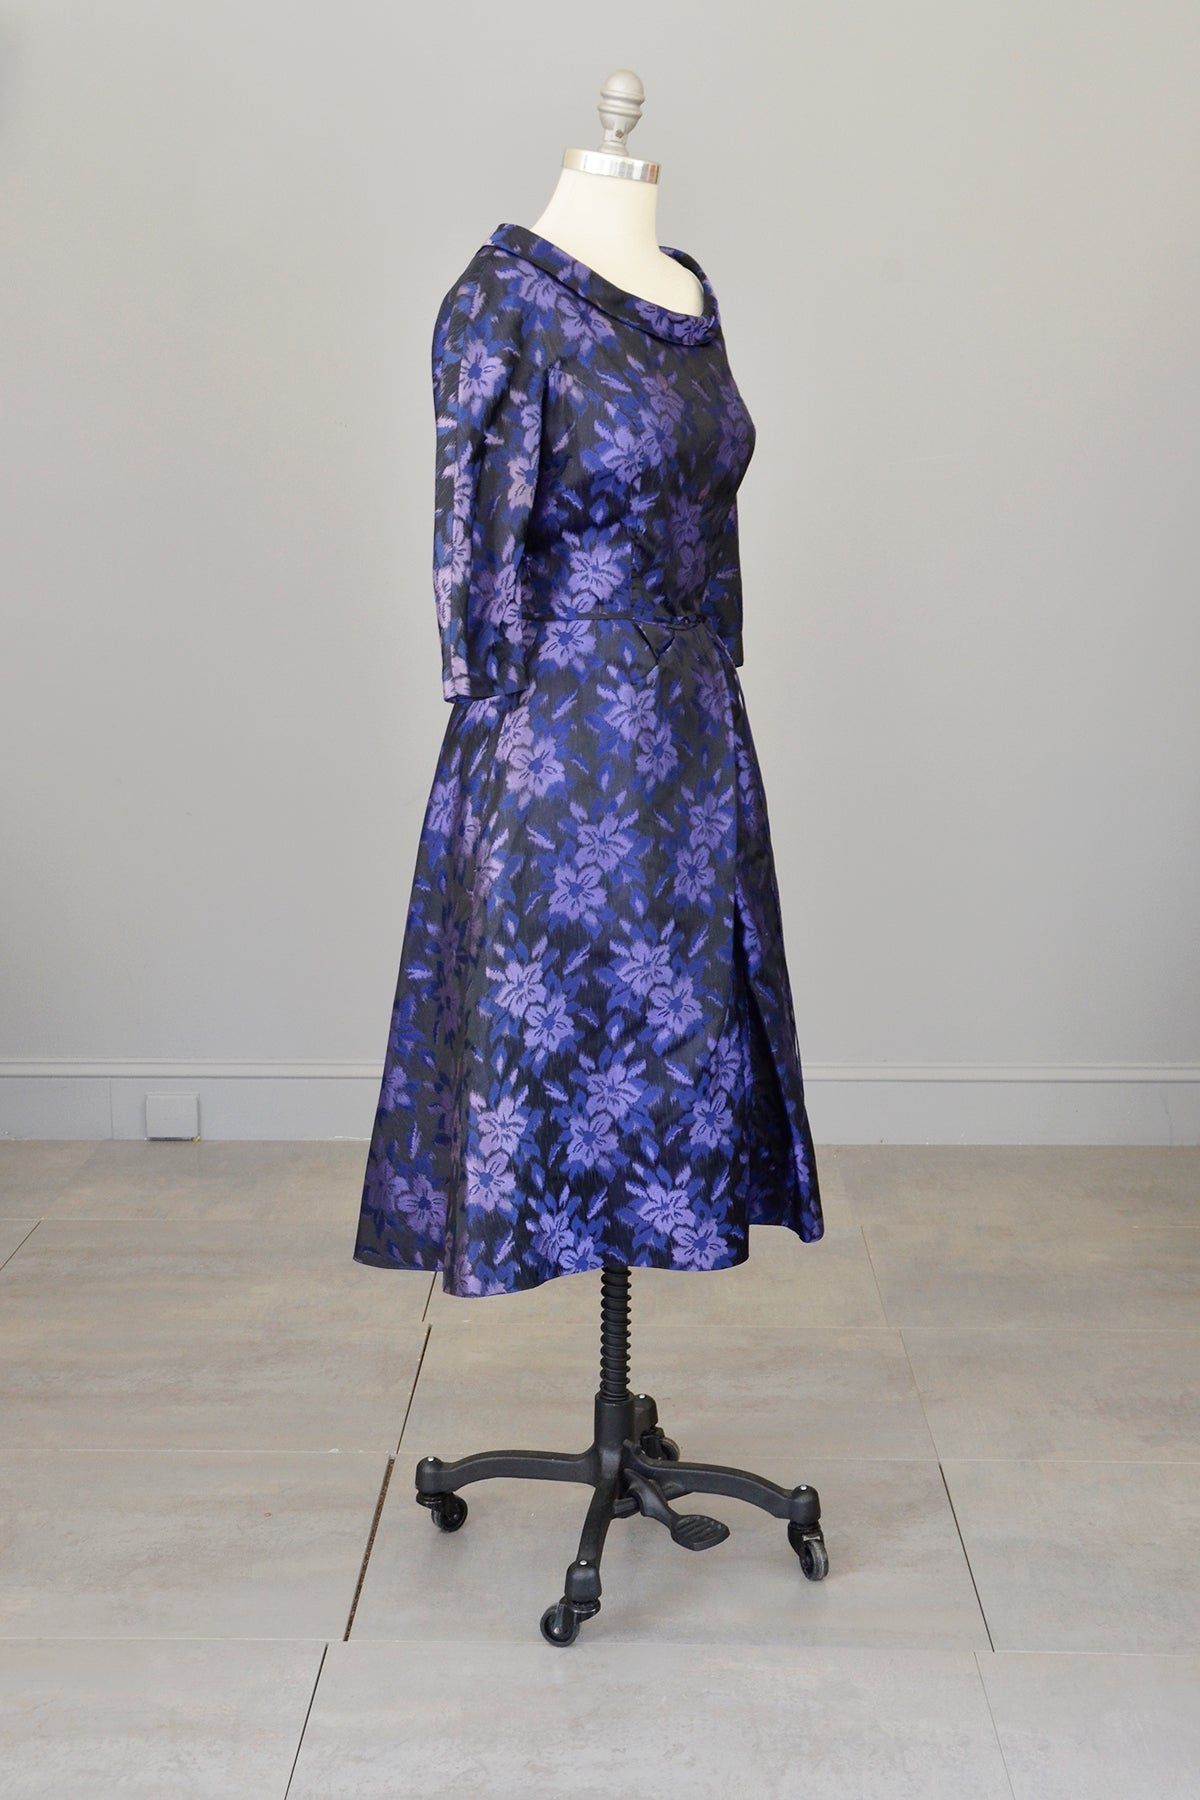 1950s Black Purple Floral Print Office Party Dress